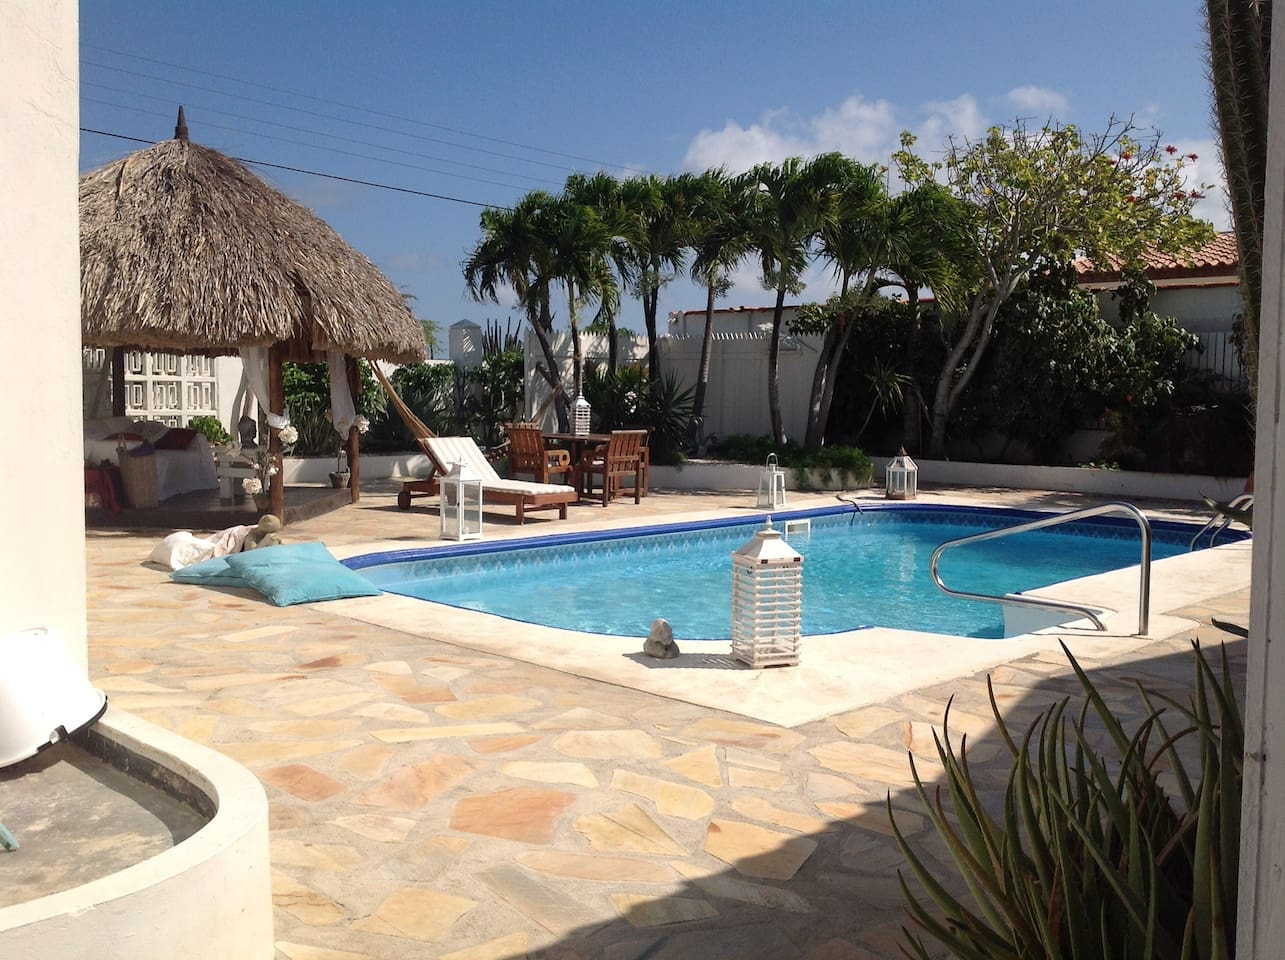 Pool at La Casita with gazebo and long chairs to relax